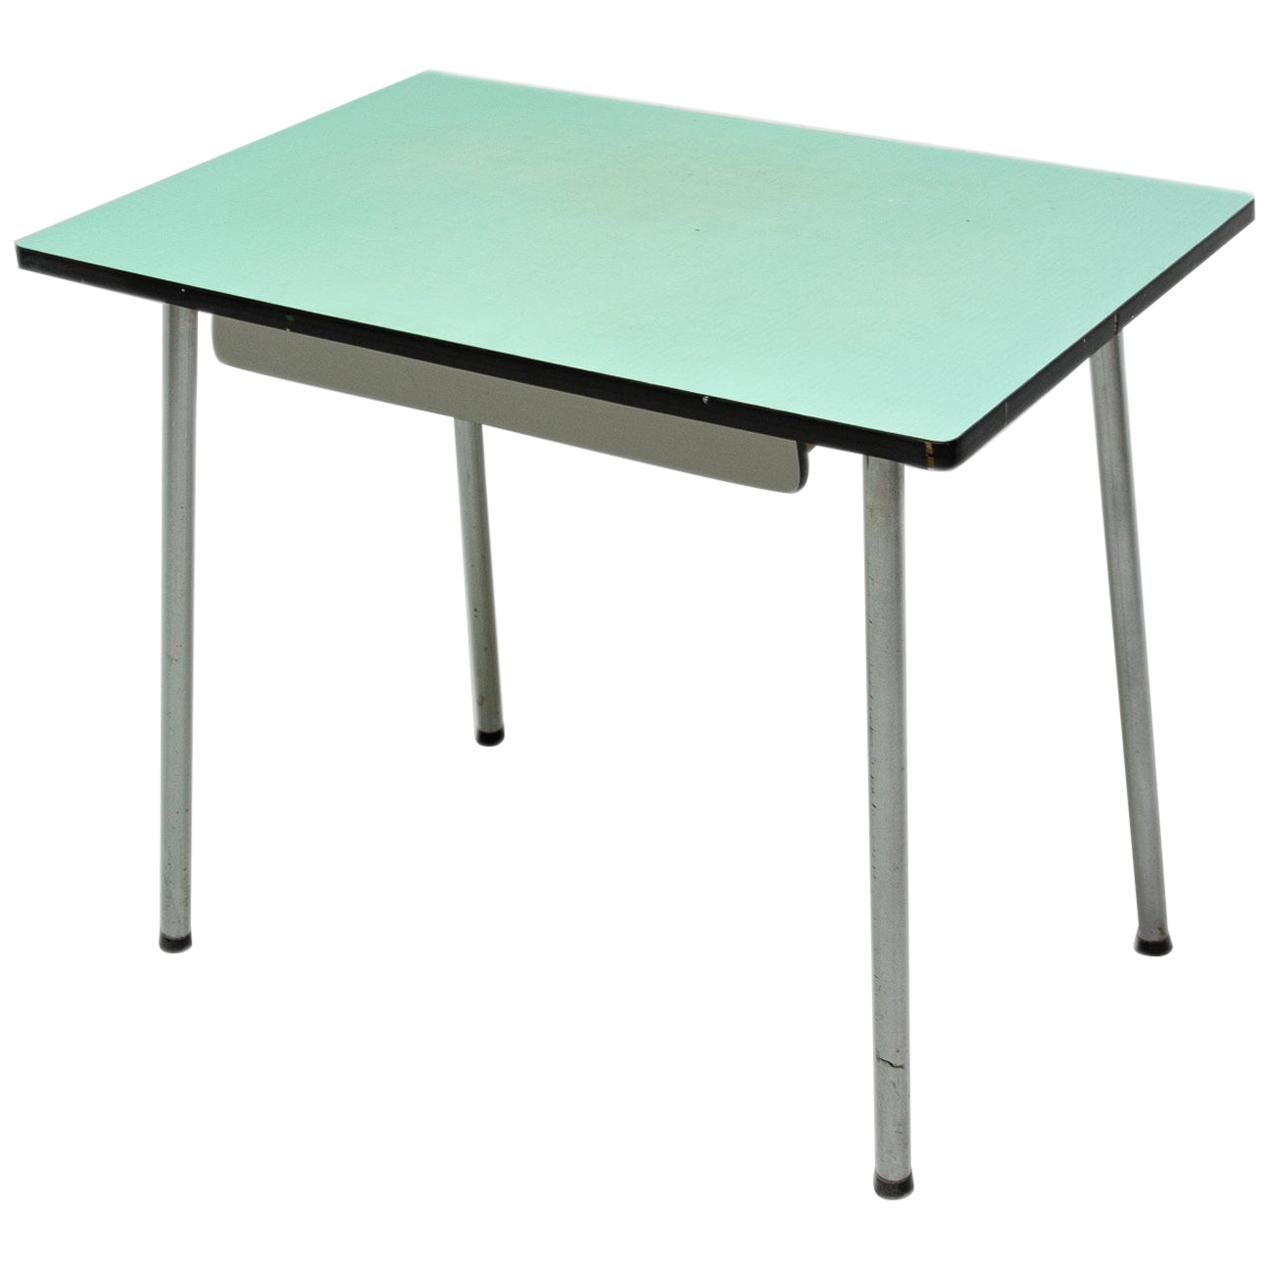 Midcentury Formica Writing Desk or Side Table, 1960s, Czechoslovakia